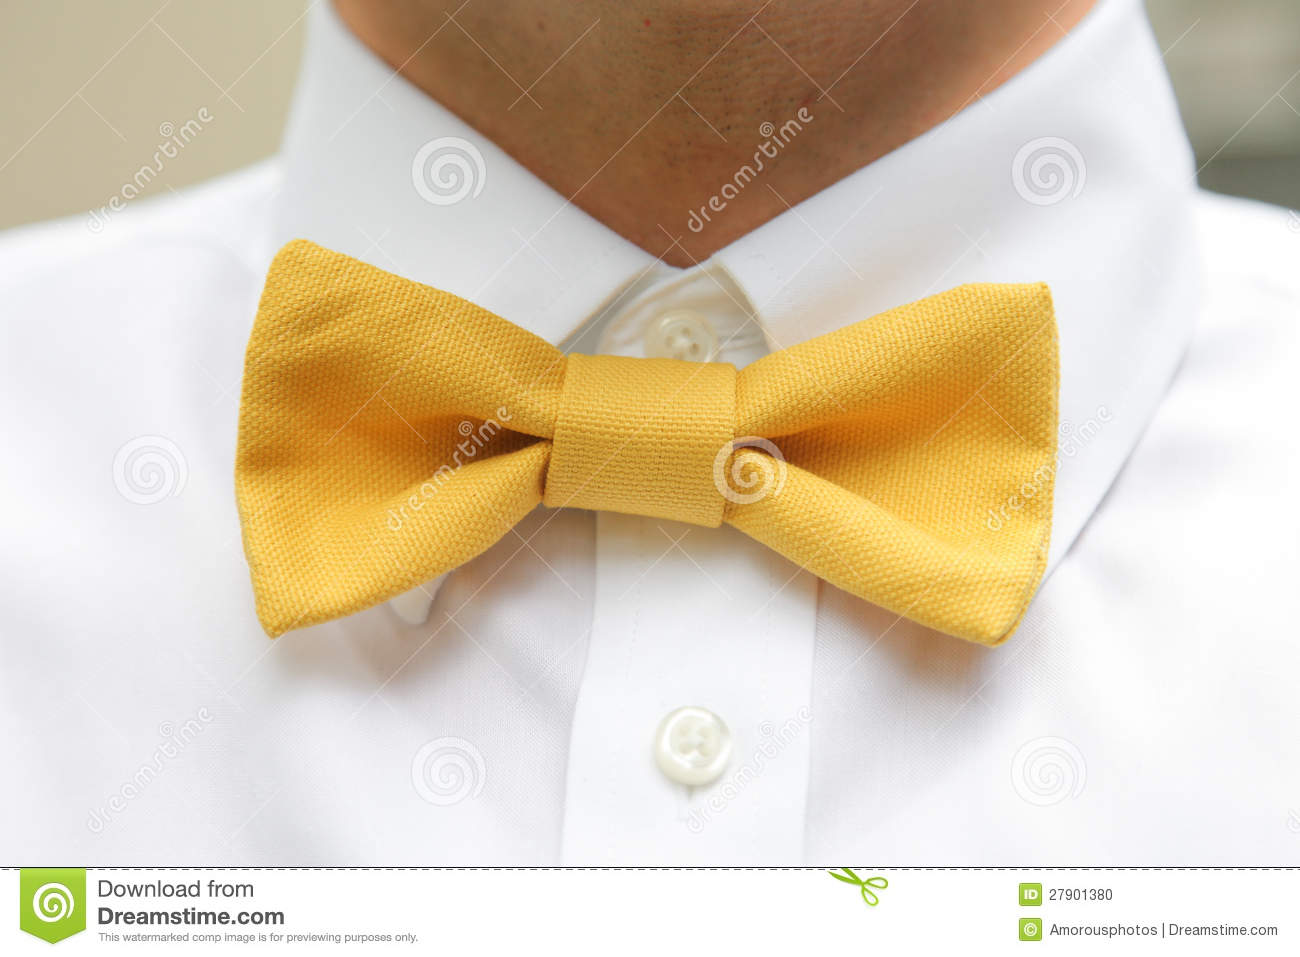 03582afa8e5a Man wearing yellow bow tie stock photo. Image of buttons - 27901380